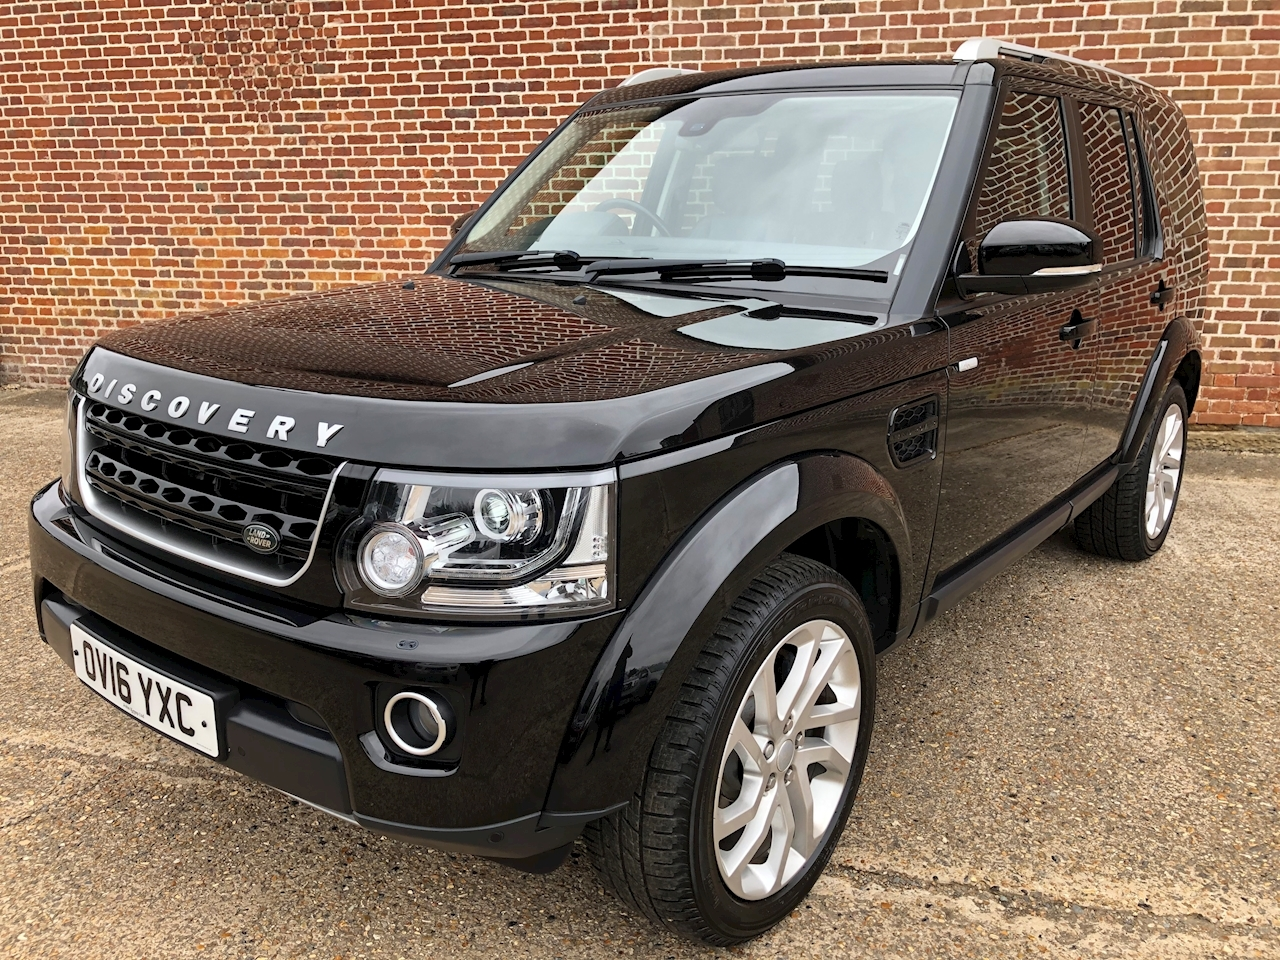 Land Rover Discovery 4 Landmark SUV 3.0 Automatic Diesel